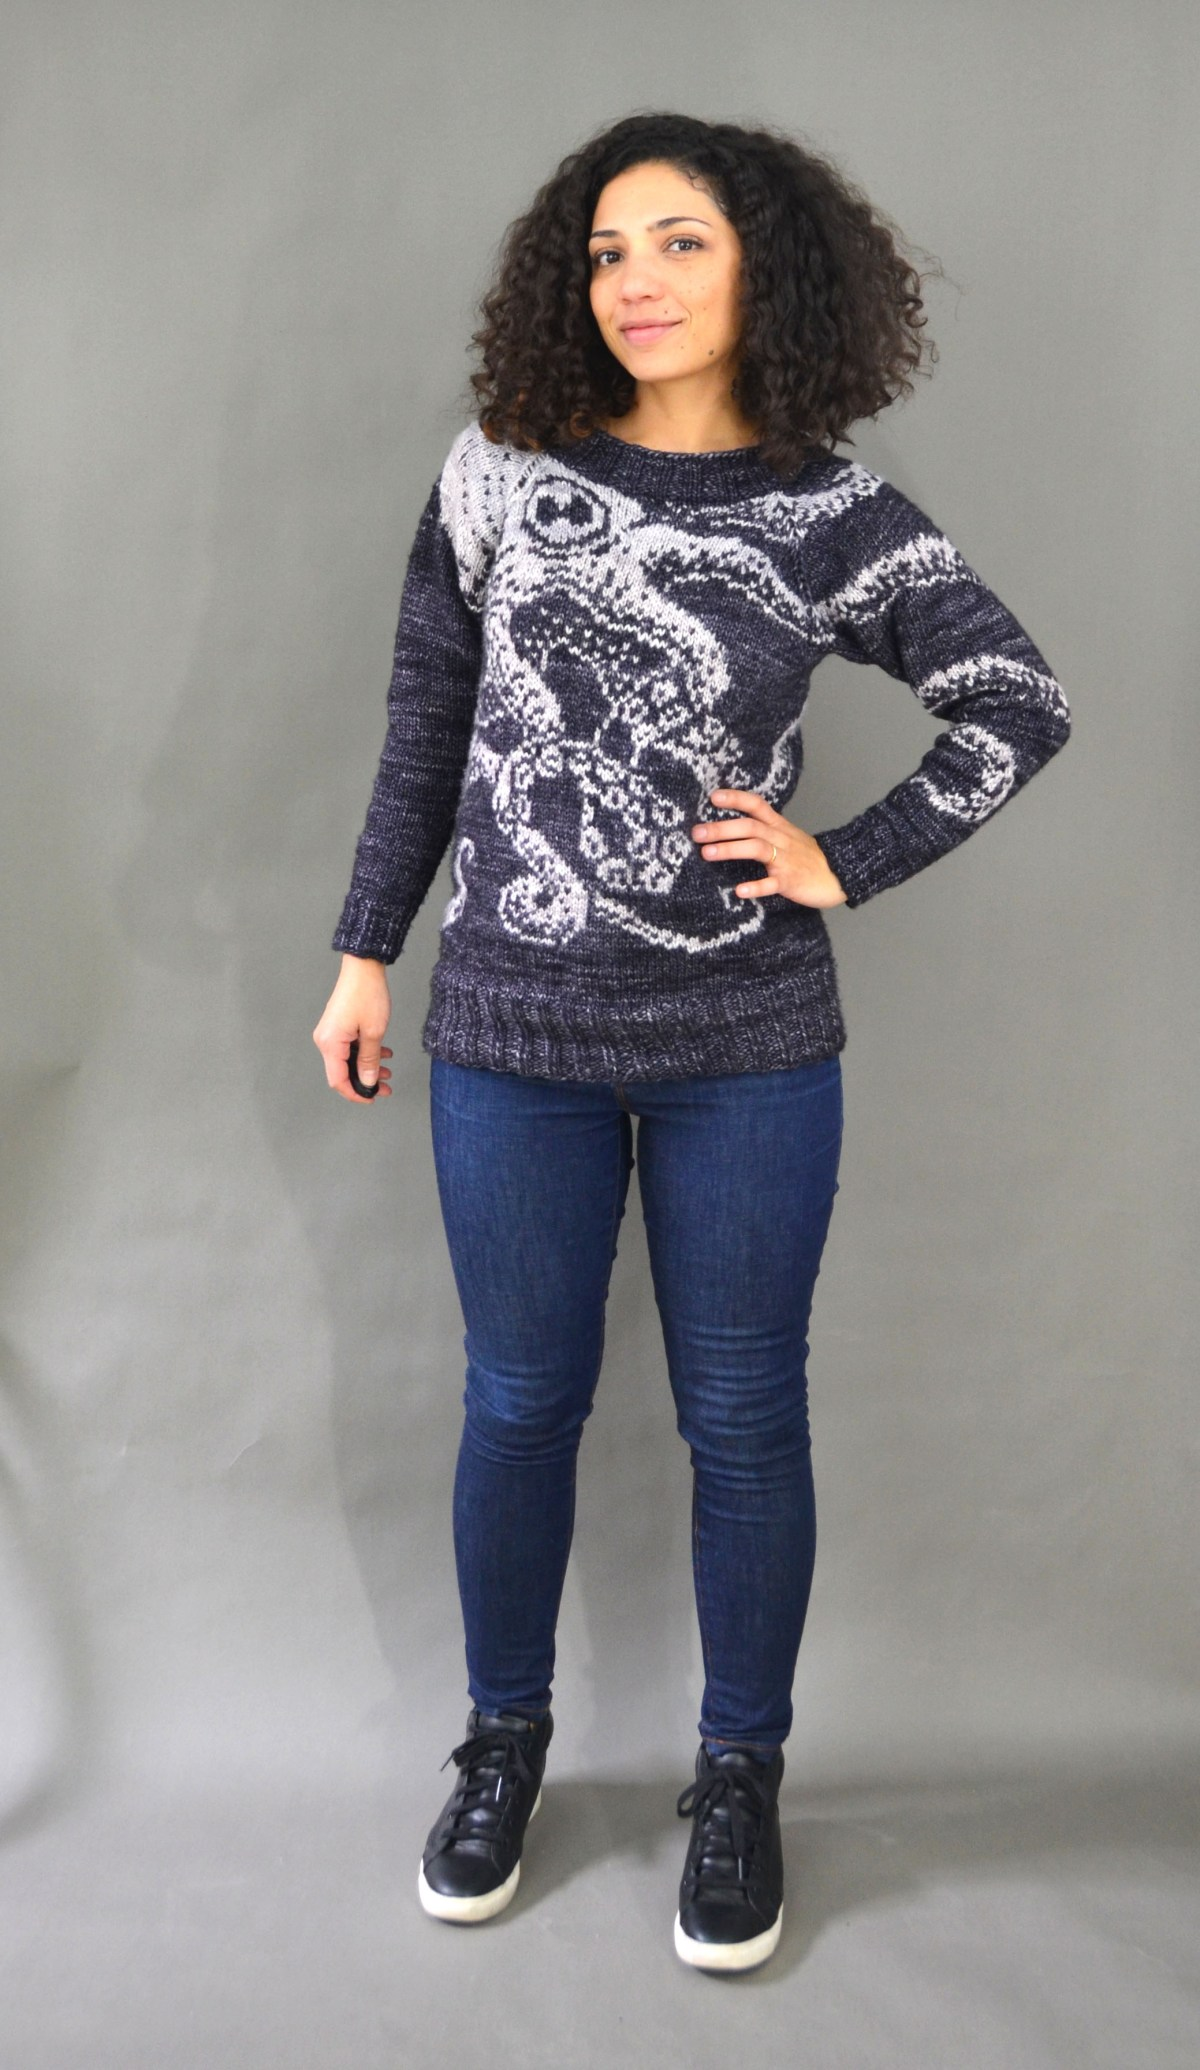 The author looking at the camera with one hand on her hip and smiling.  She is wearing a grey and white knitted jumper with an octopus on it, blue jeans and black sneakers.